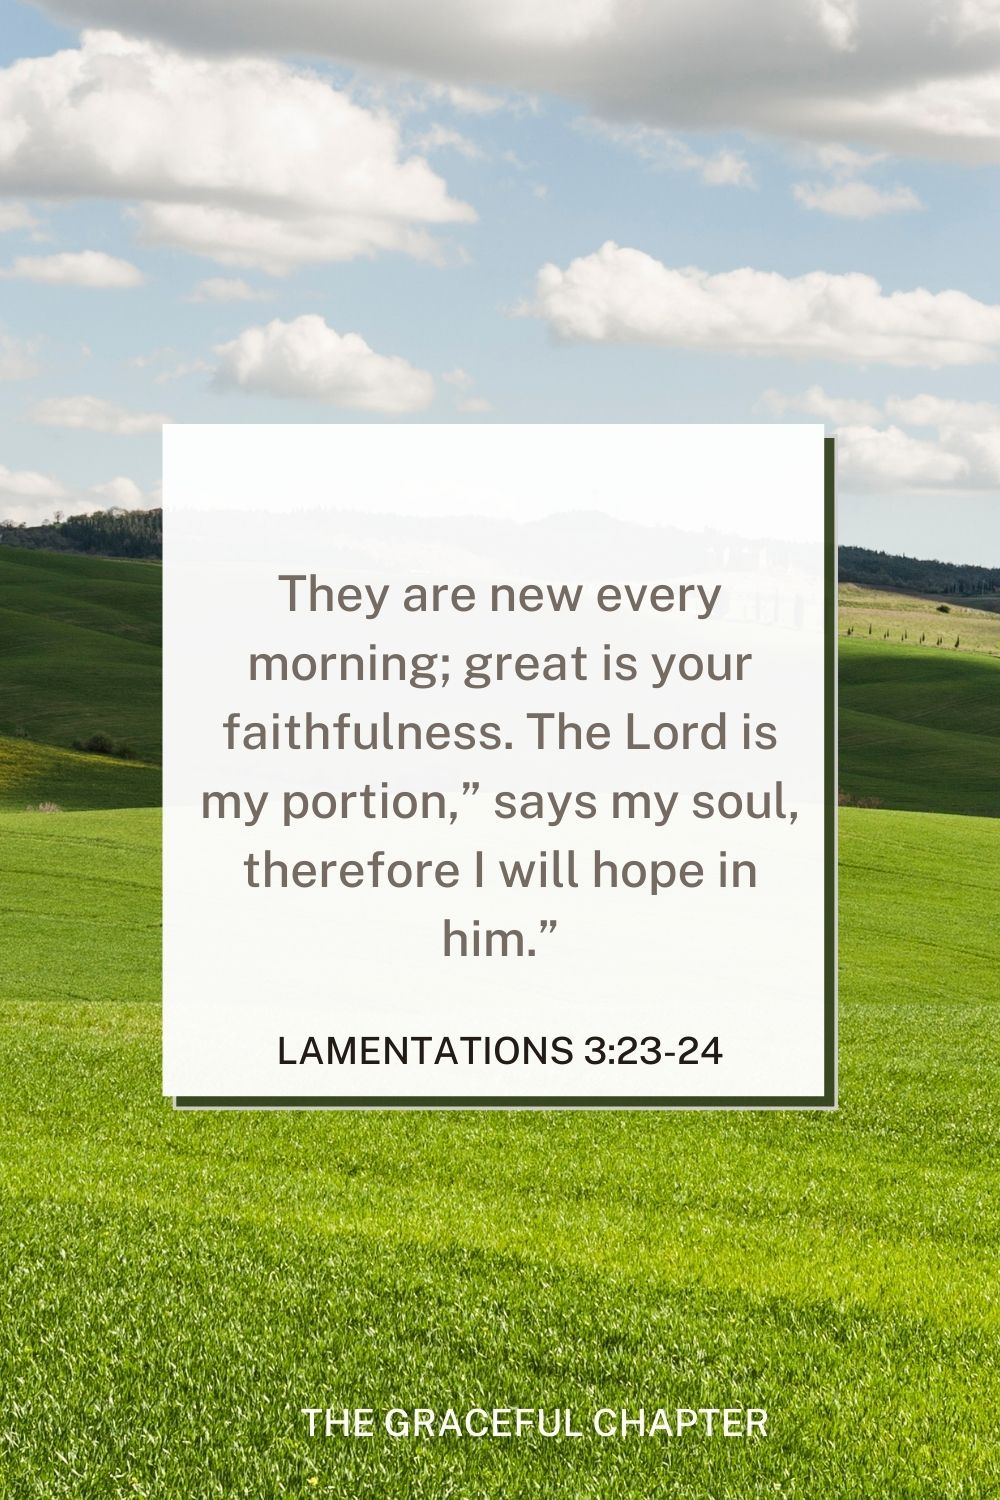 """They are new every morning; great is your faithfulness. The Lord is my portion,"""" says my soul, therefore I will hope in him."""" Lamentations 3:23-24 - mercy bible verses esv"""